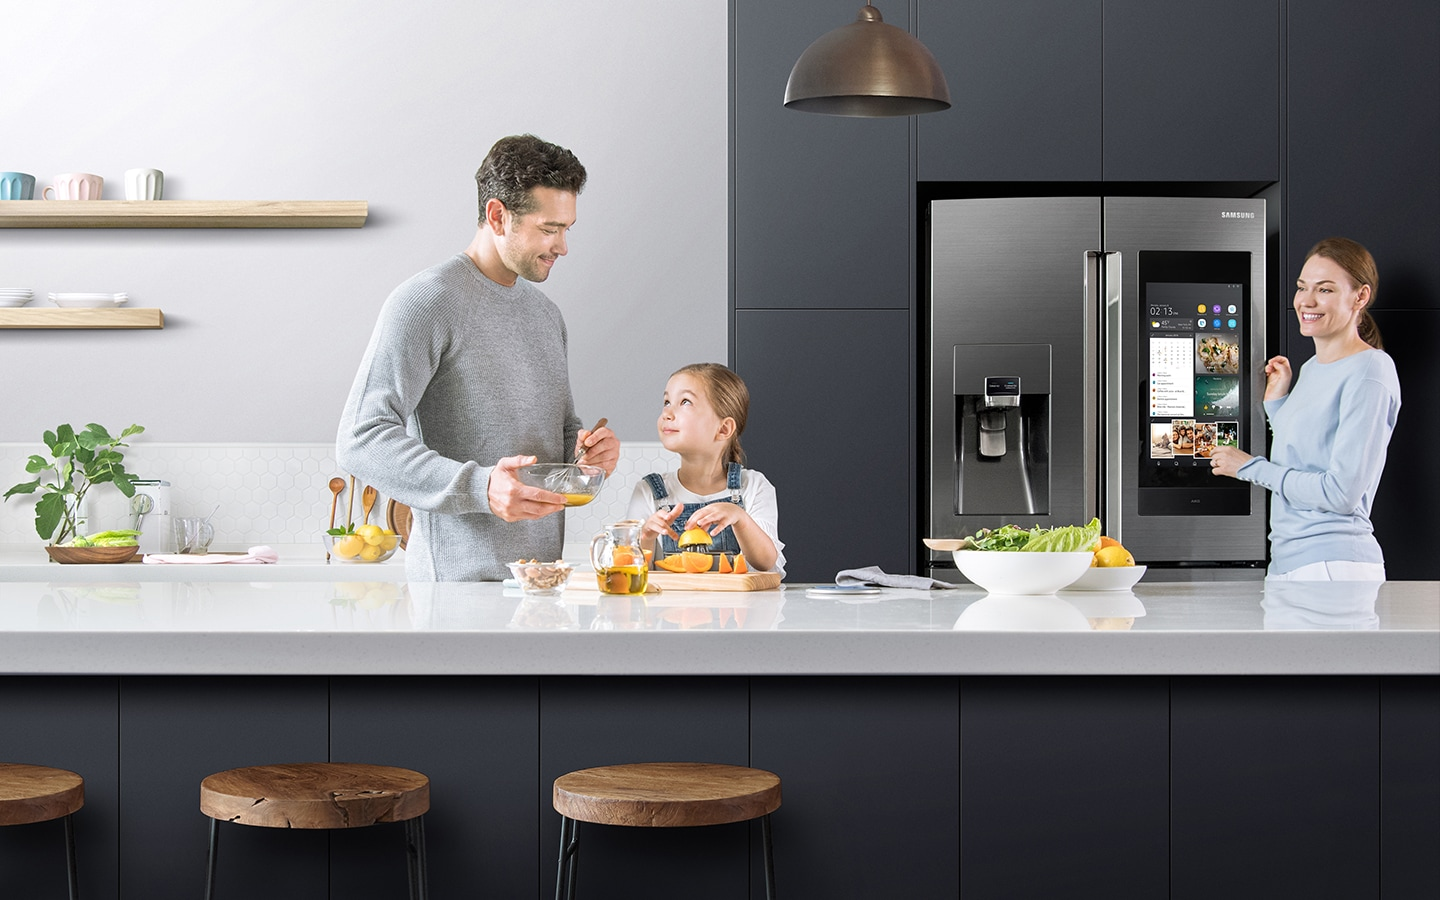 A father and daughter prepare eggs and orange juice on the kitchen counter, as the mother watches over them and smiles while standing next to the Family Hub with the screen in on mode.